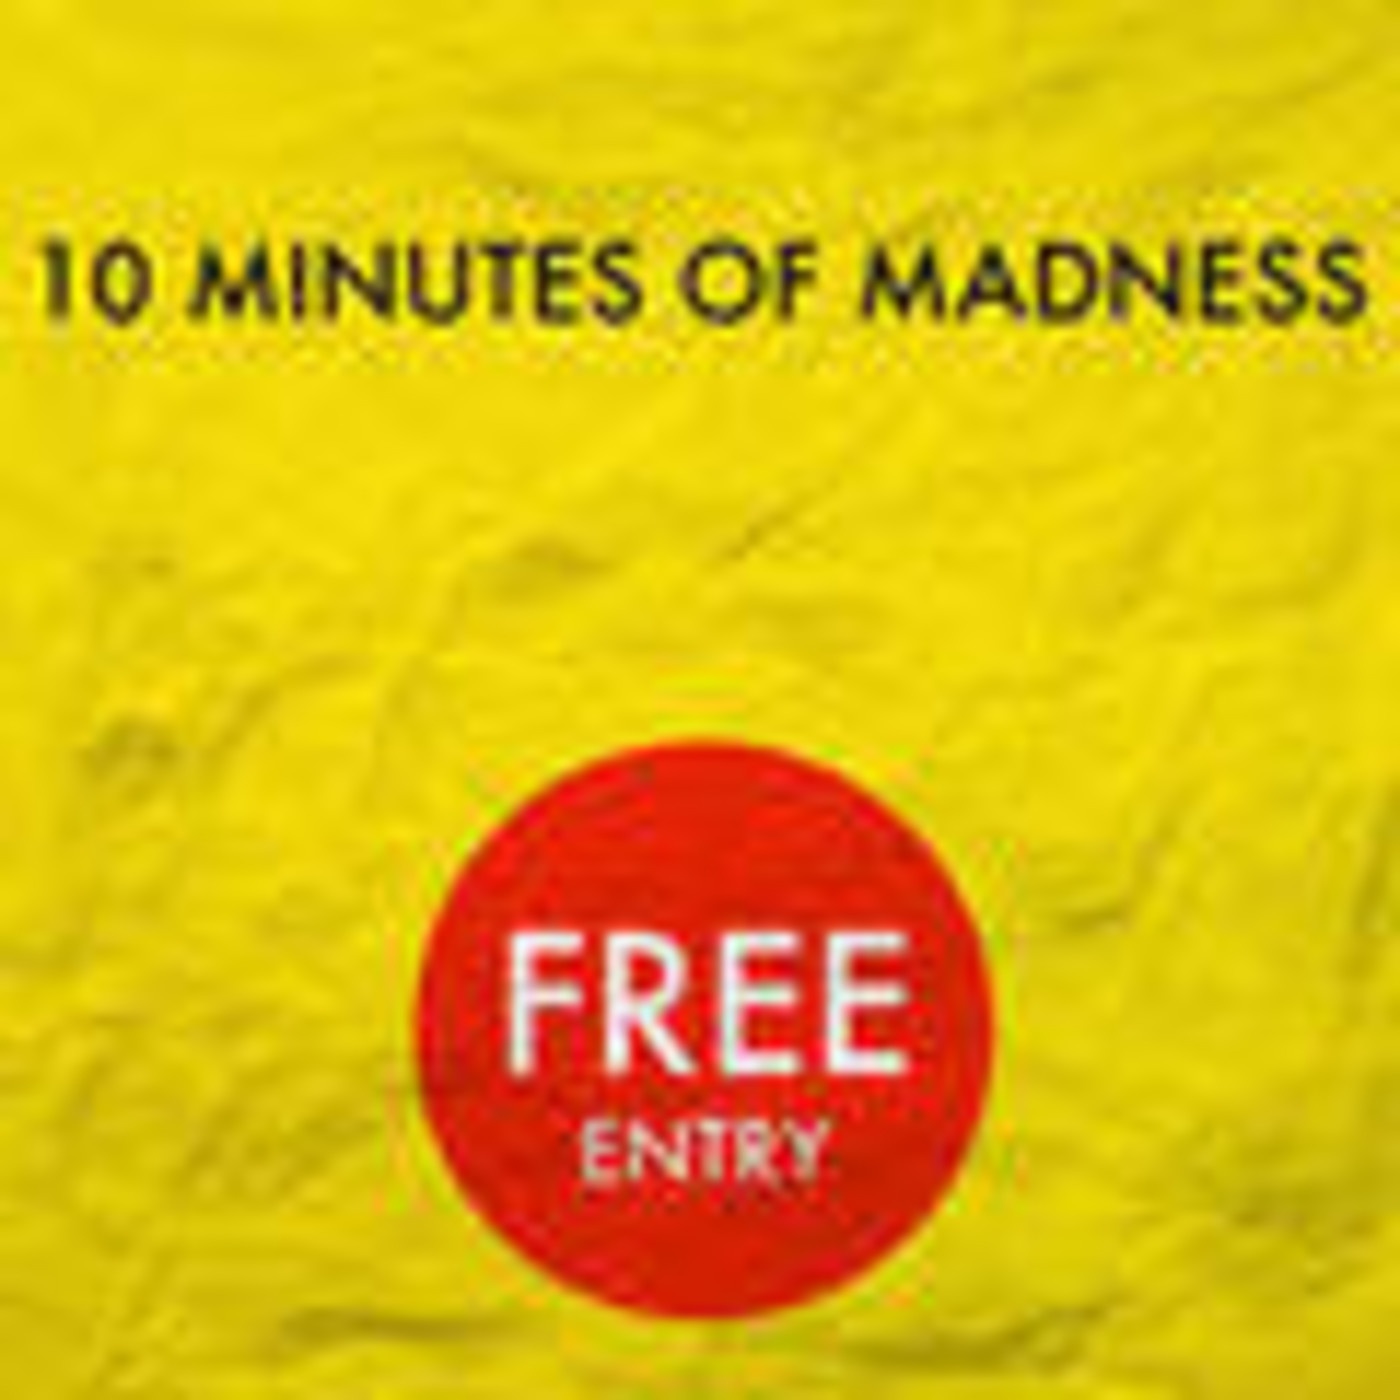 10 Minutes Of Madness